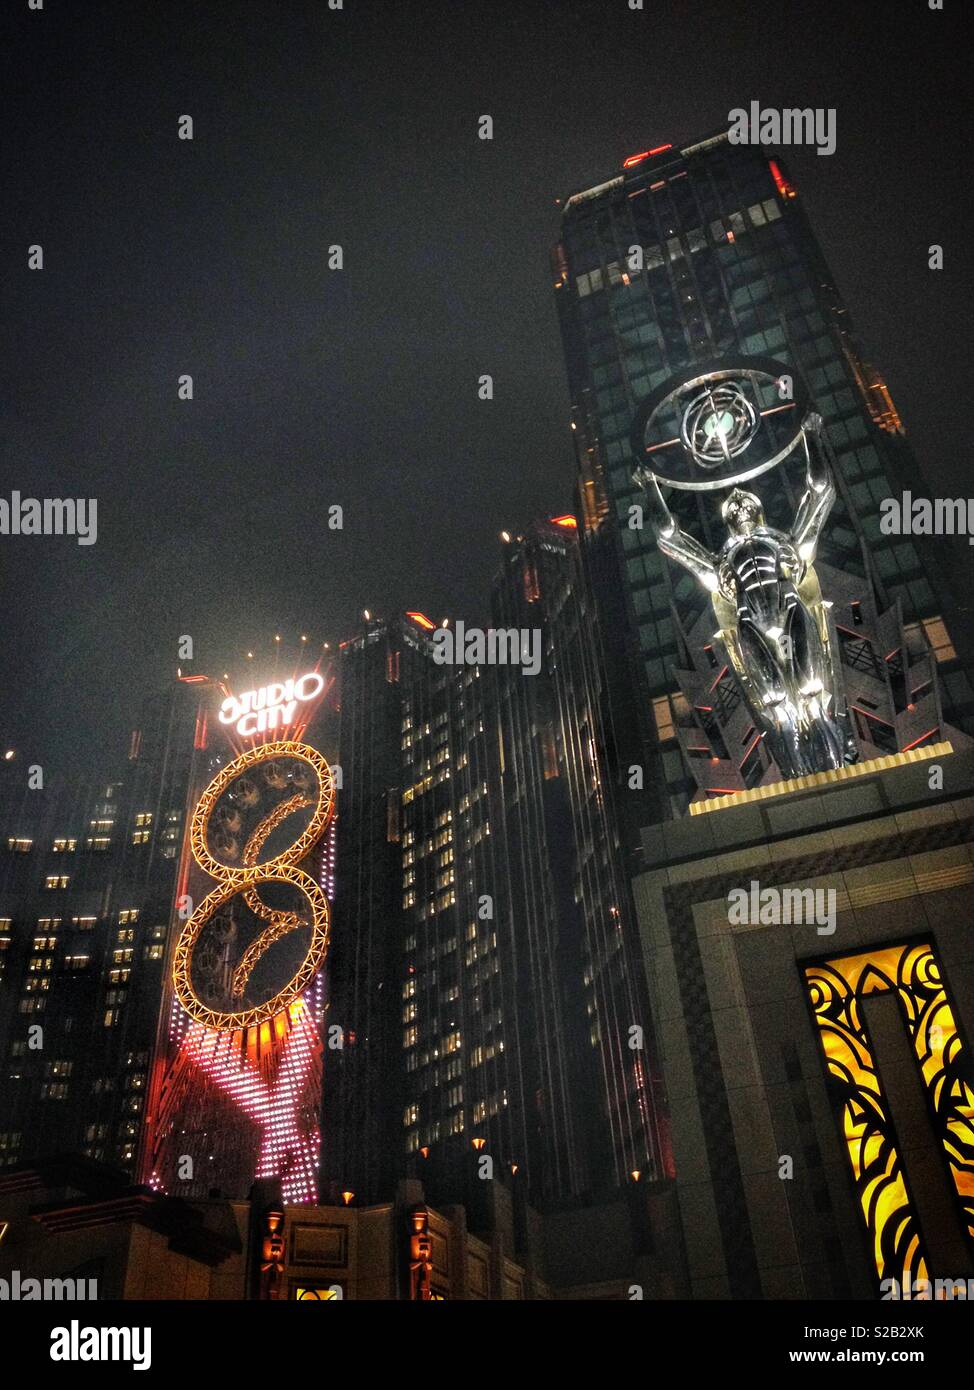 Studio City hotel, casino and shopping complex, Macau, featuring the Golden Reel, the world's first figure-8 ferris wheel. 8 is a lucky number in Chinese culture. - Stock Image